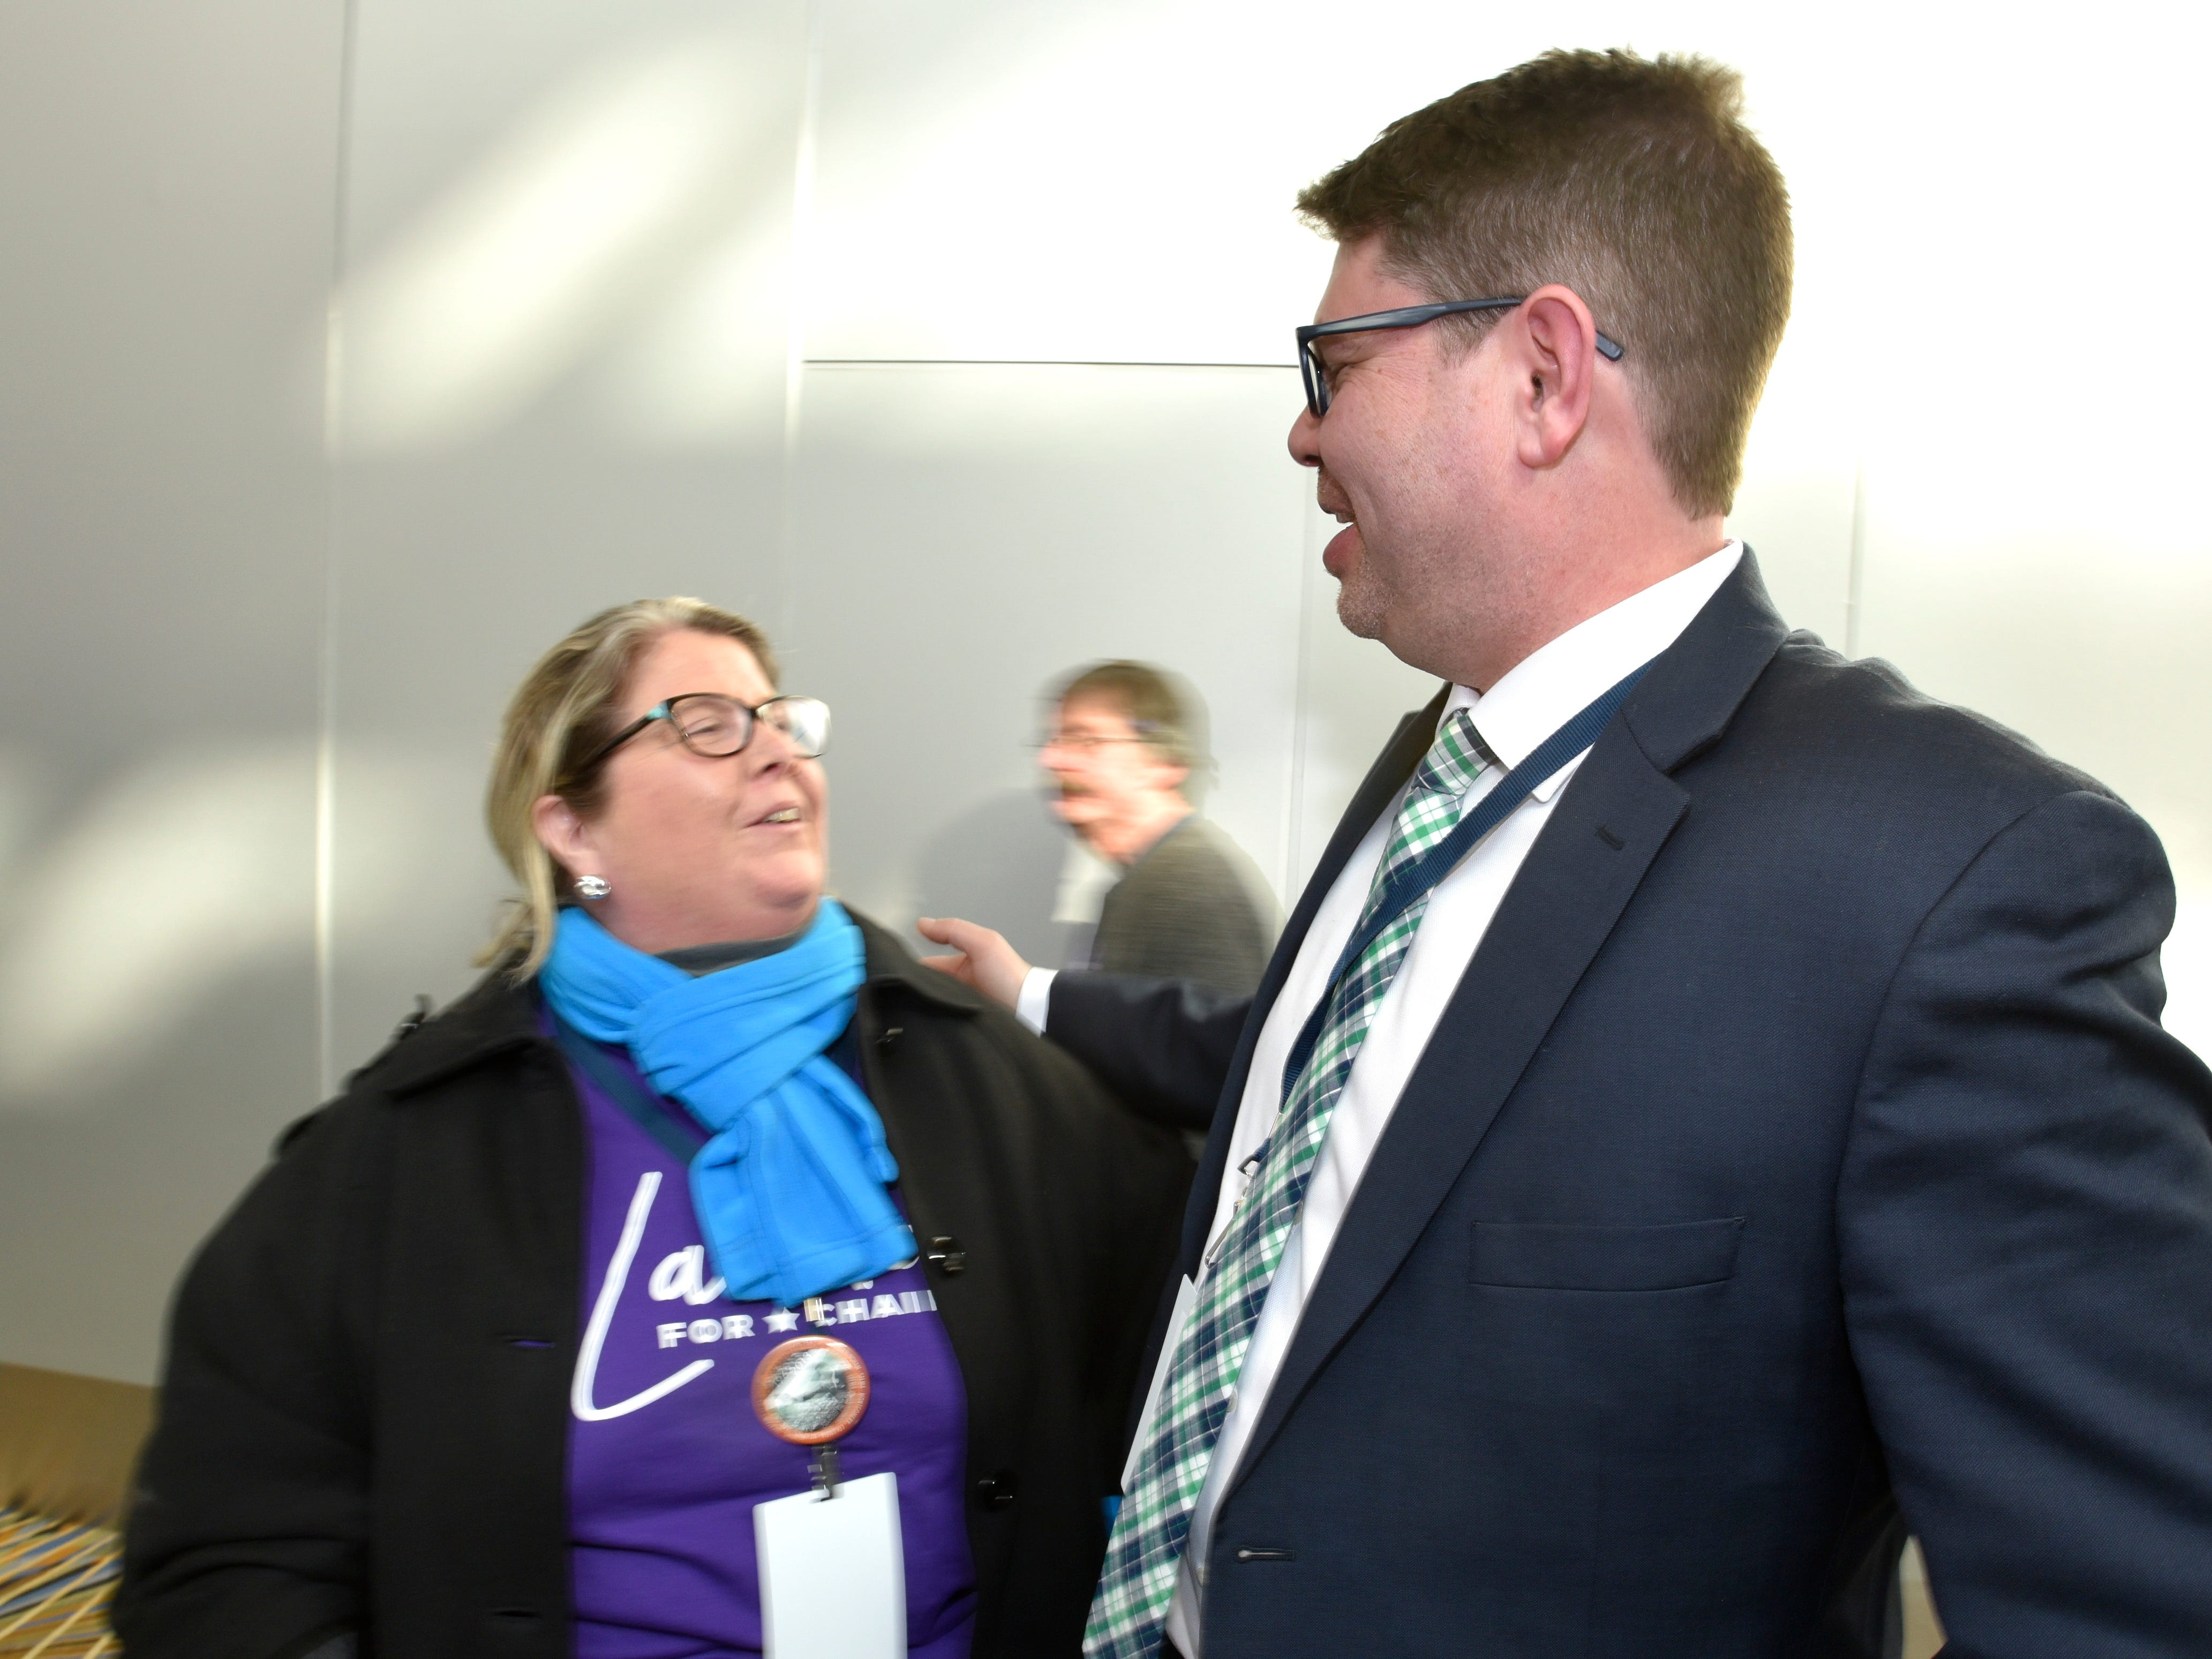 Patricia Harris, left, of Westland, talks to outgoing MI Democratic chairman Brandon Dillon as throngs of Democrats gather for the Michigan Democratic Party Spring State Convention in the Grand Riverview Ballroom at Cobo Center, Saturday afternoon, February 2, 2019.